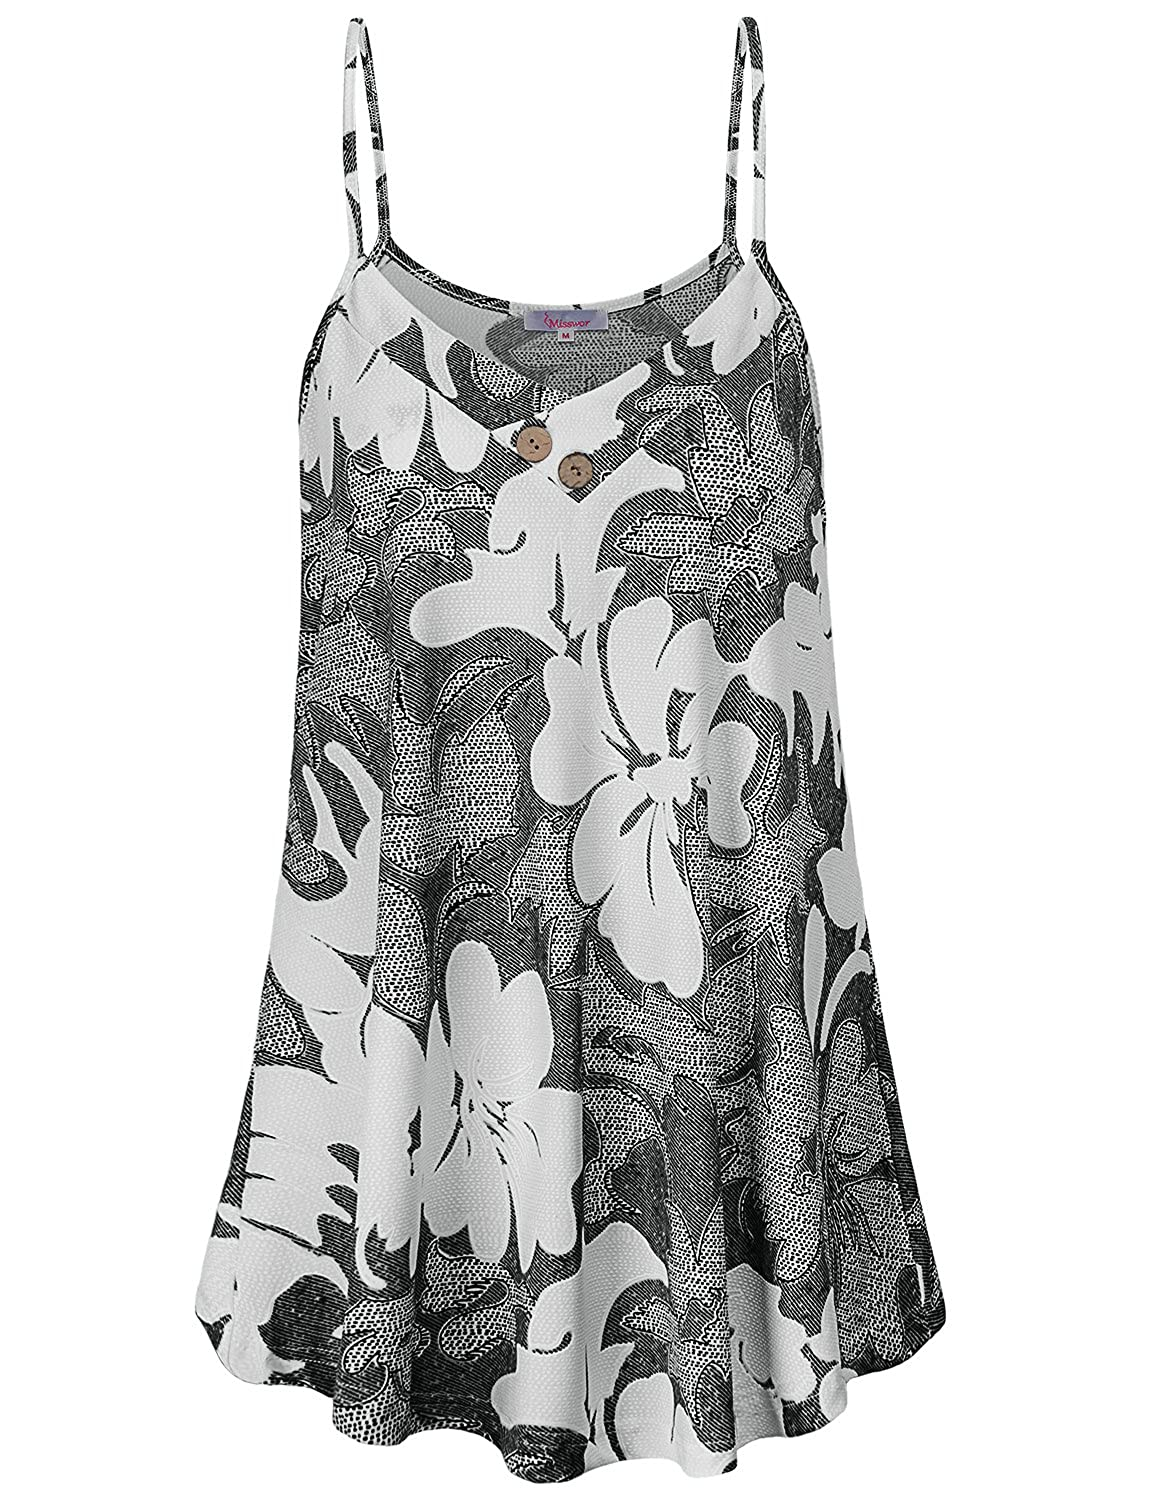 8b6209276c5 Machine washable Hand wash in cold recommended. Design Tank Top Sleveless V  Neck Flowy Style Floral Print Spaghetti Strap Lightweight The Floral print  ...